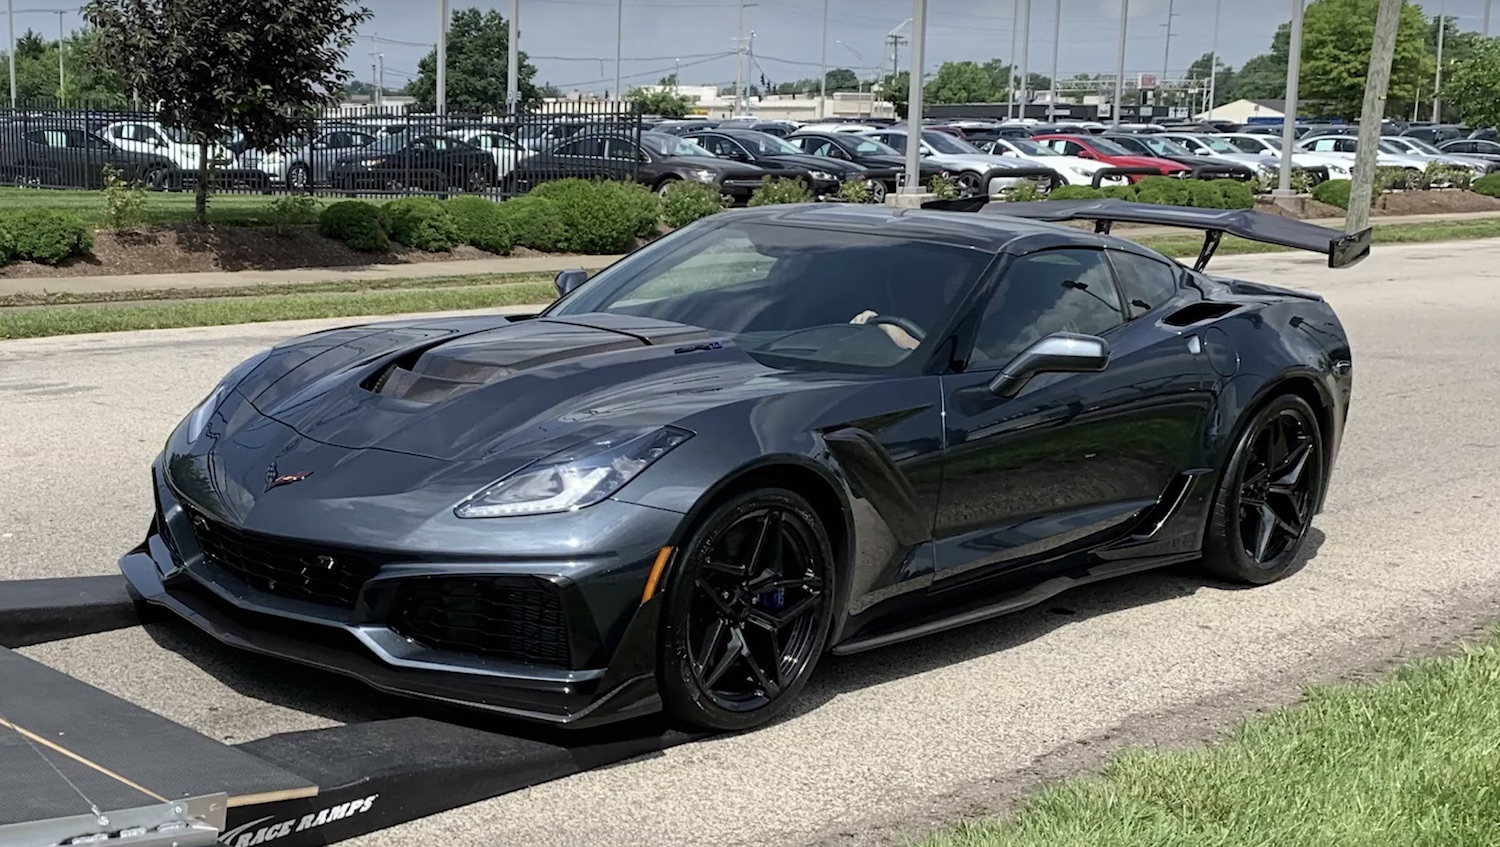 Who Would Trade In A 2019 Corvette Zr1 For Another 2019